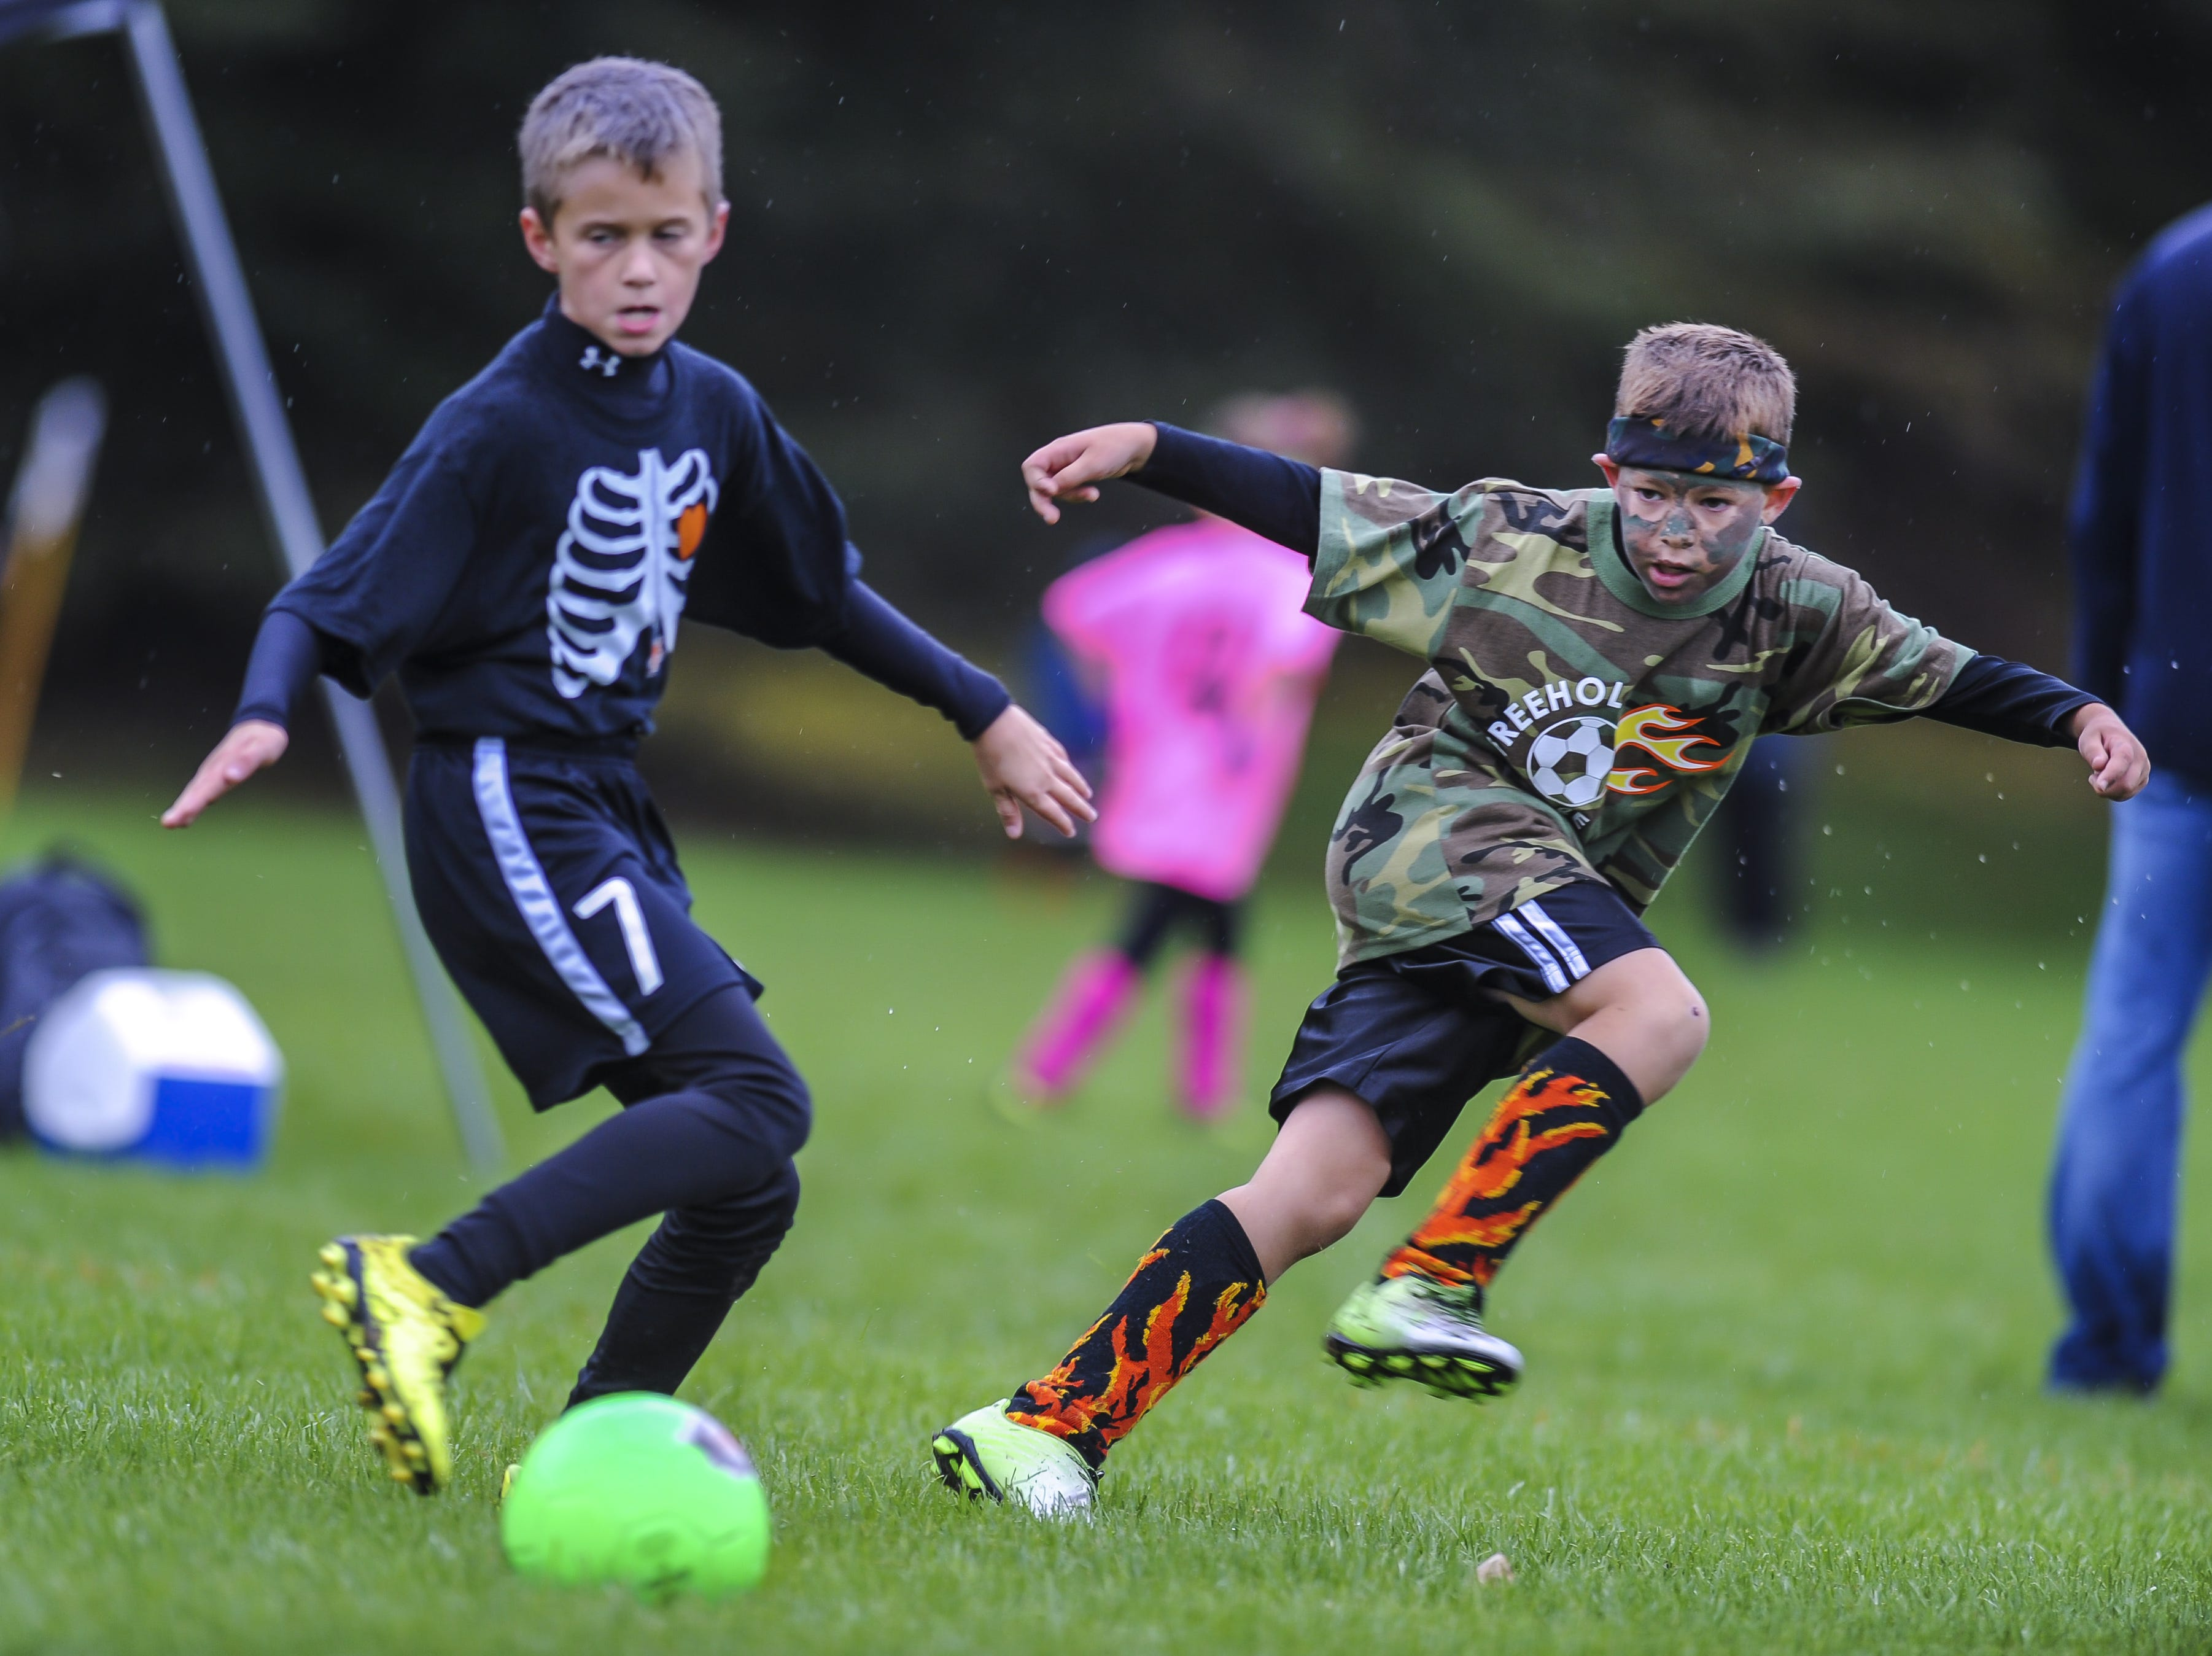 Hamilton Falcons take on Freehold Fire in the Freehold Soccer League  Halloween-themed Fright Fest Tournament where teams wear Halloween costumes as uniforms and the fields are decked out with spooky decorations  at Michael J. Tighe Park in Freehold on Oct. 13, 2018.